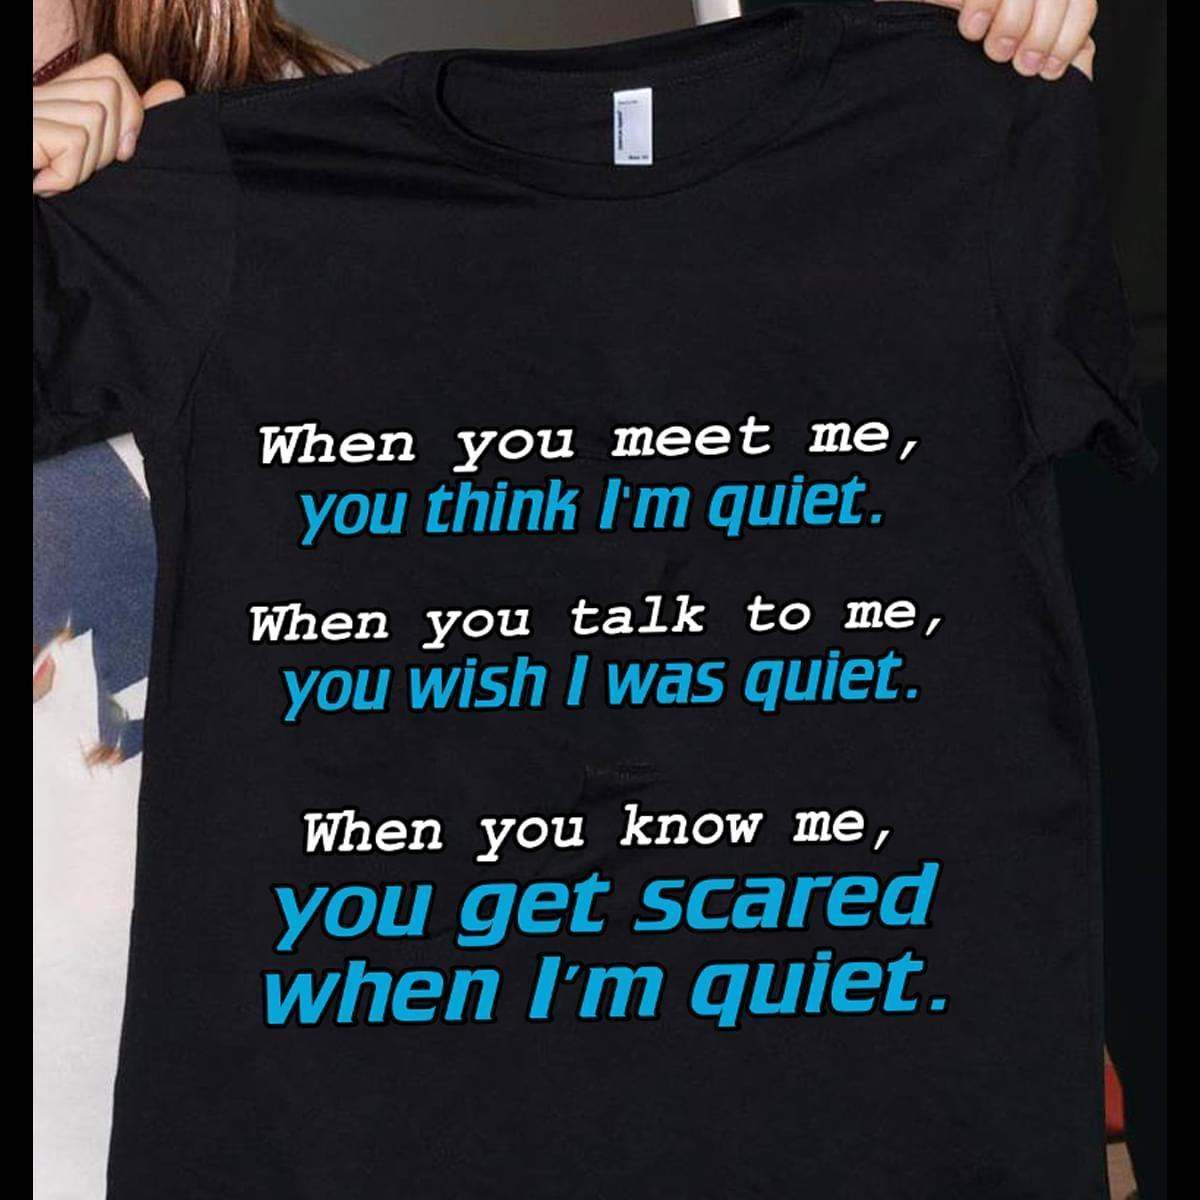 Wen Meet Me You Think Im Quite When Talk To Me You Wish I Was Quite When Know Me You Get Scared When Im Quite - Gift for Fans T-Shirt